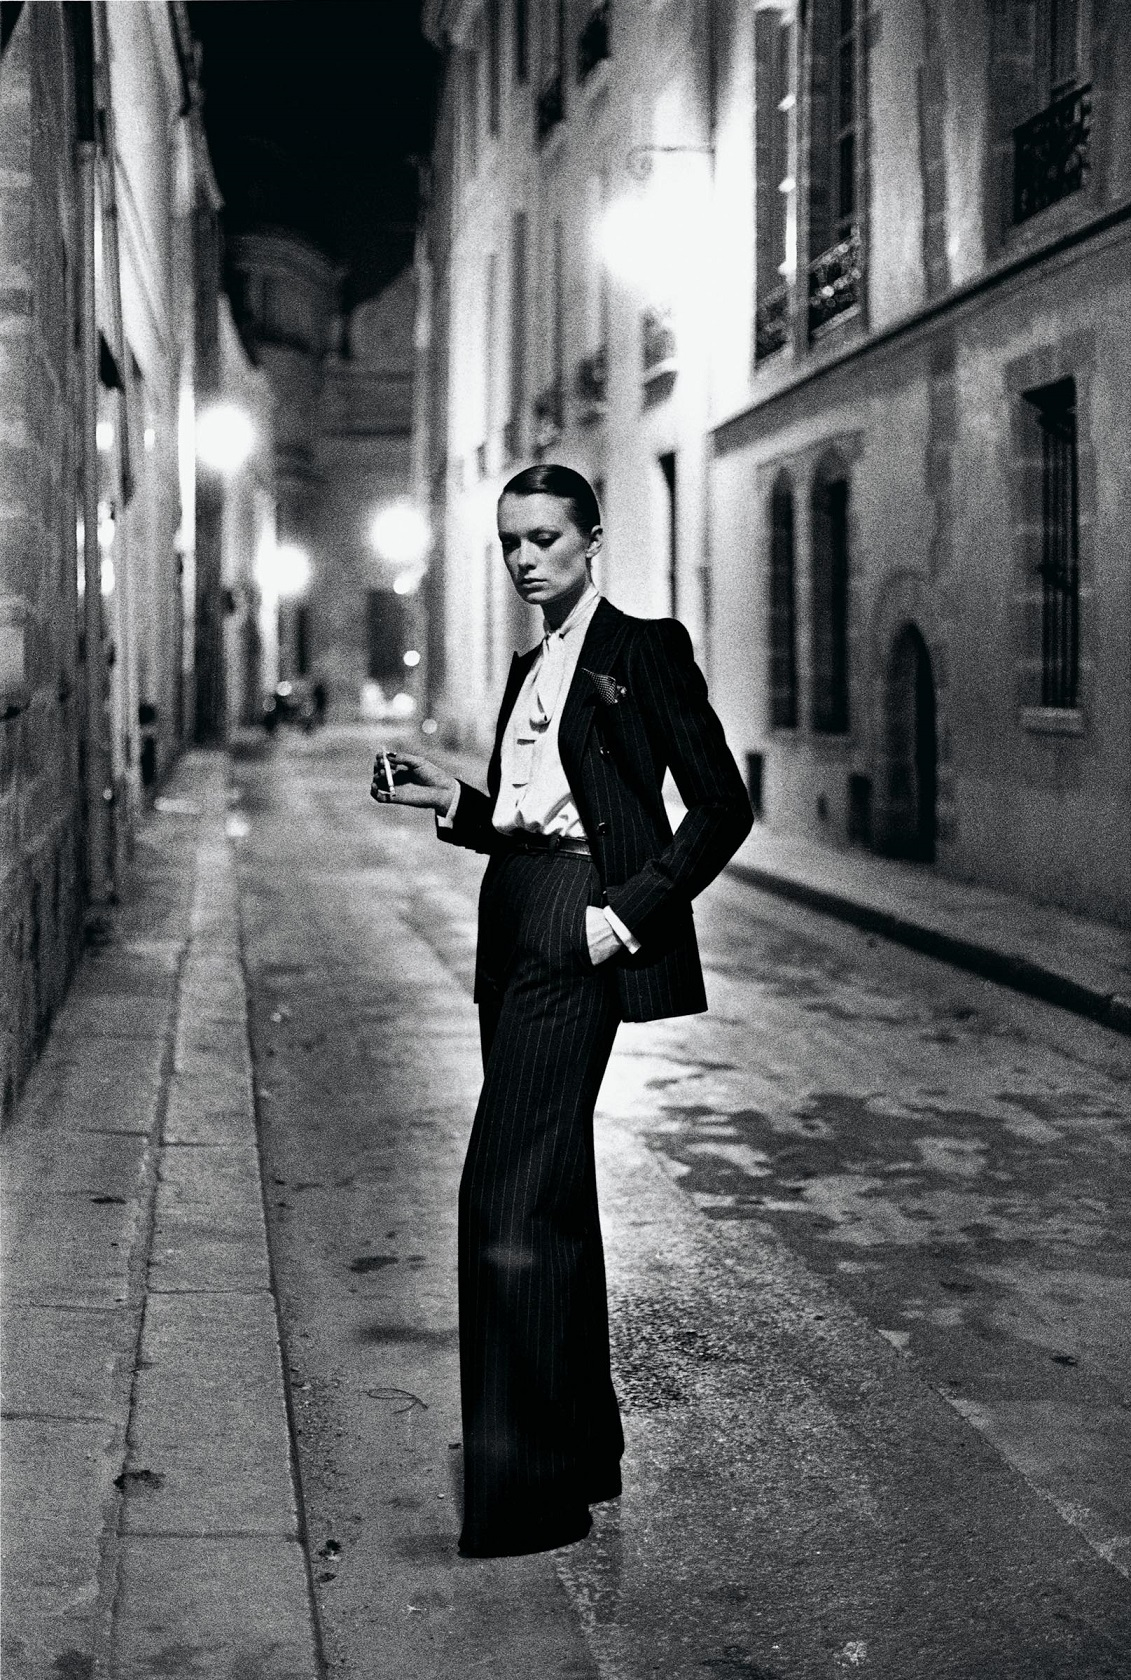 Rue Aubriot, French Vogue from the series White Women, Paris 1975,© Helmut Newton Estate